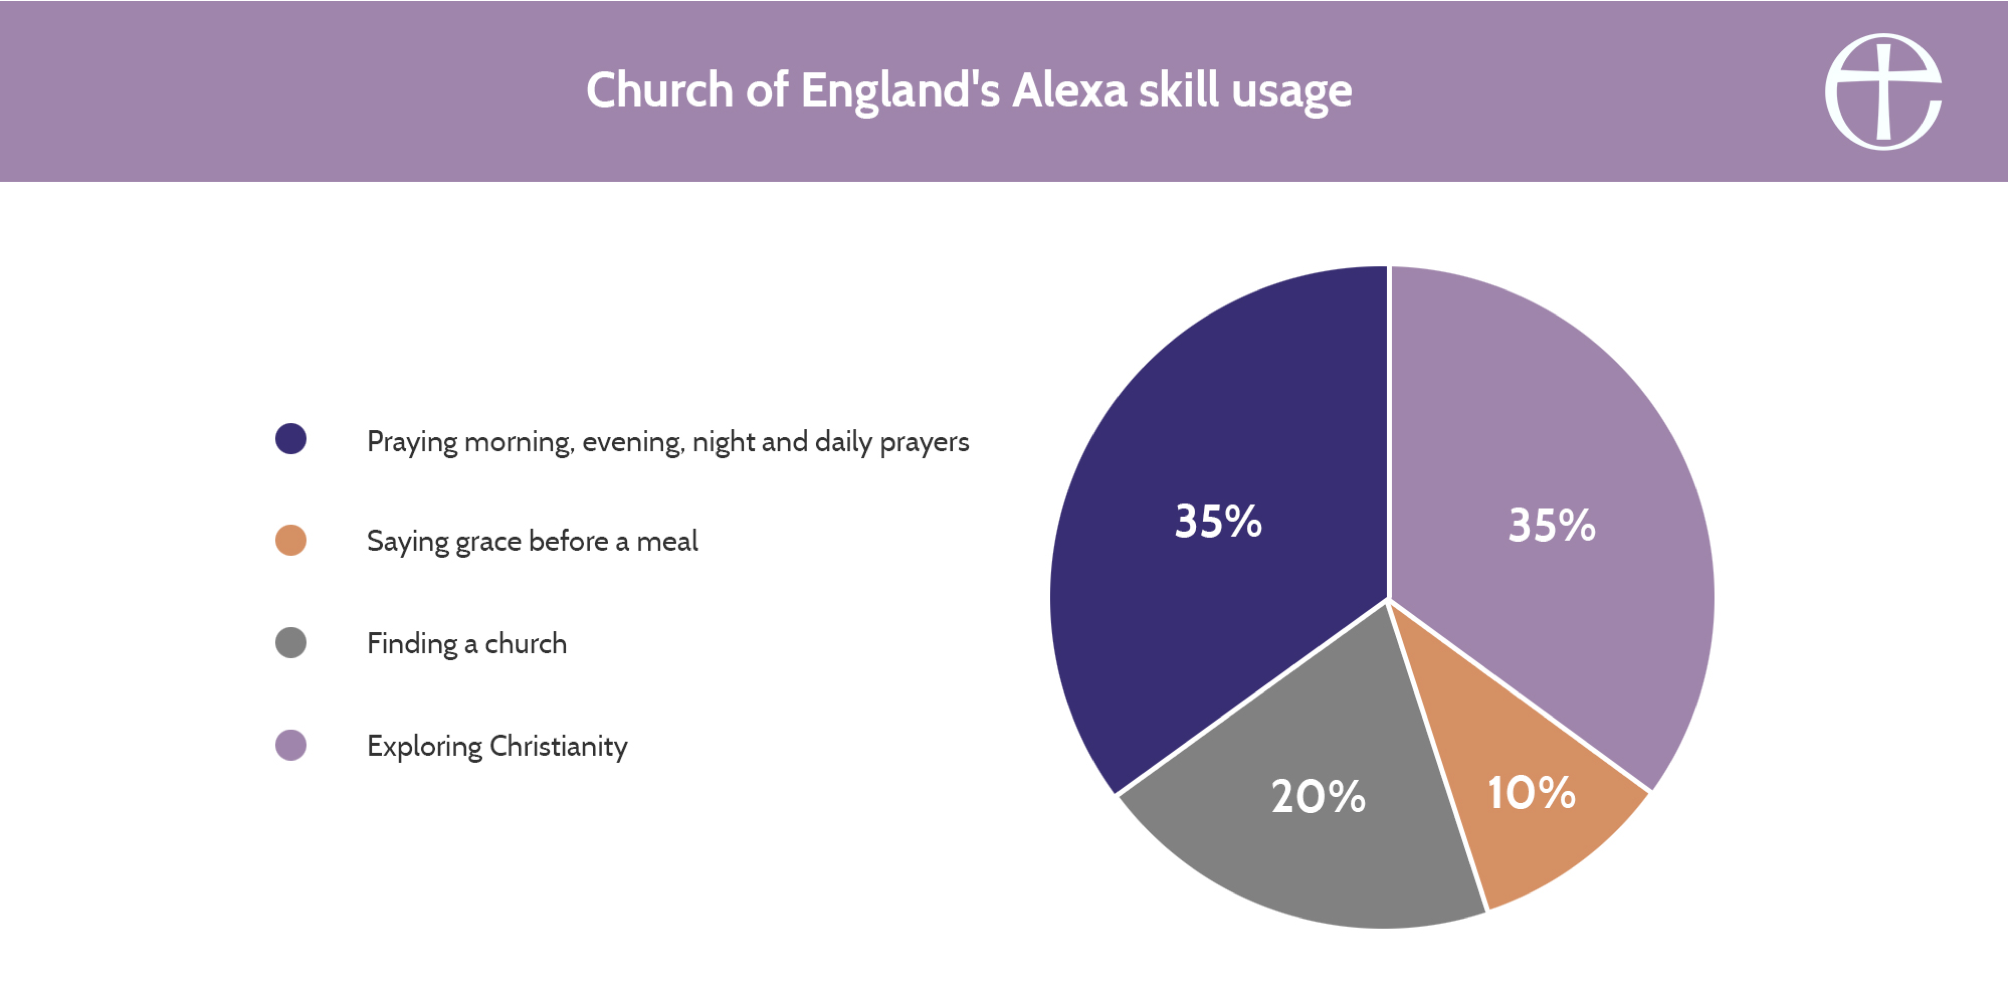 A pie chart showing the usage of the Church of England Alexa skill